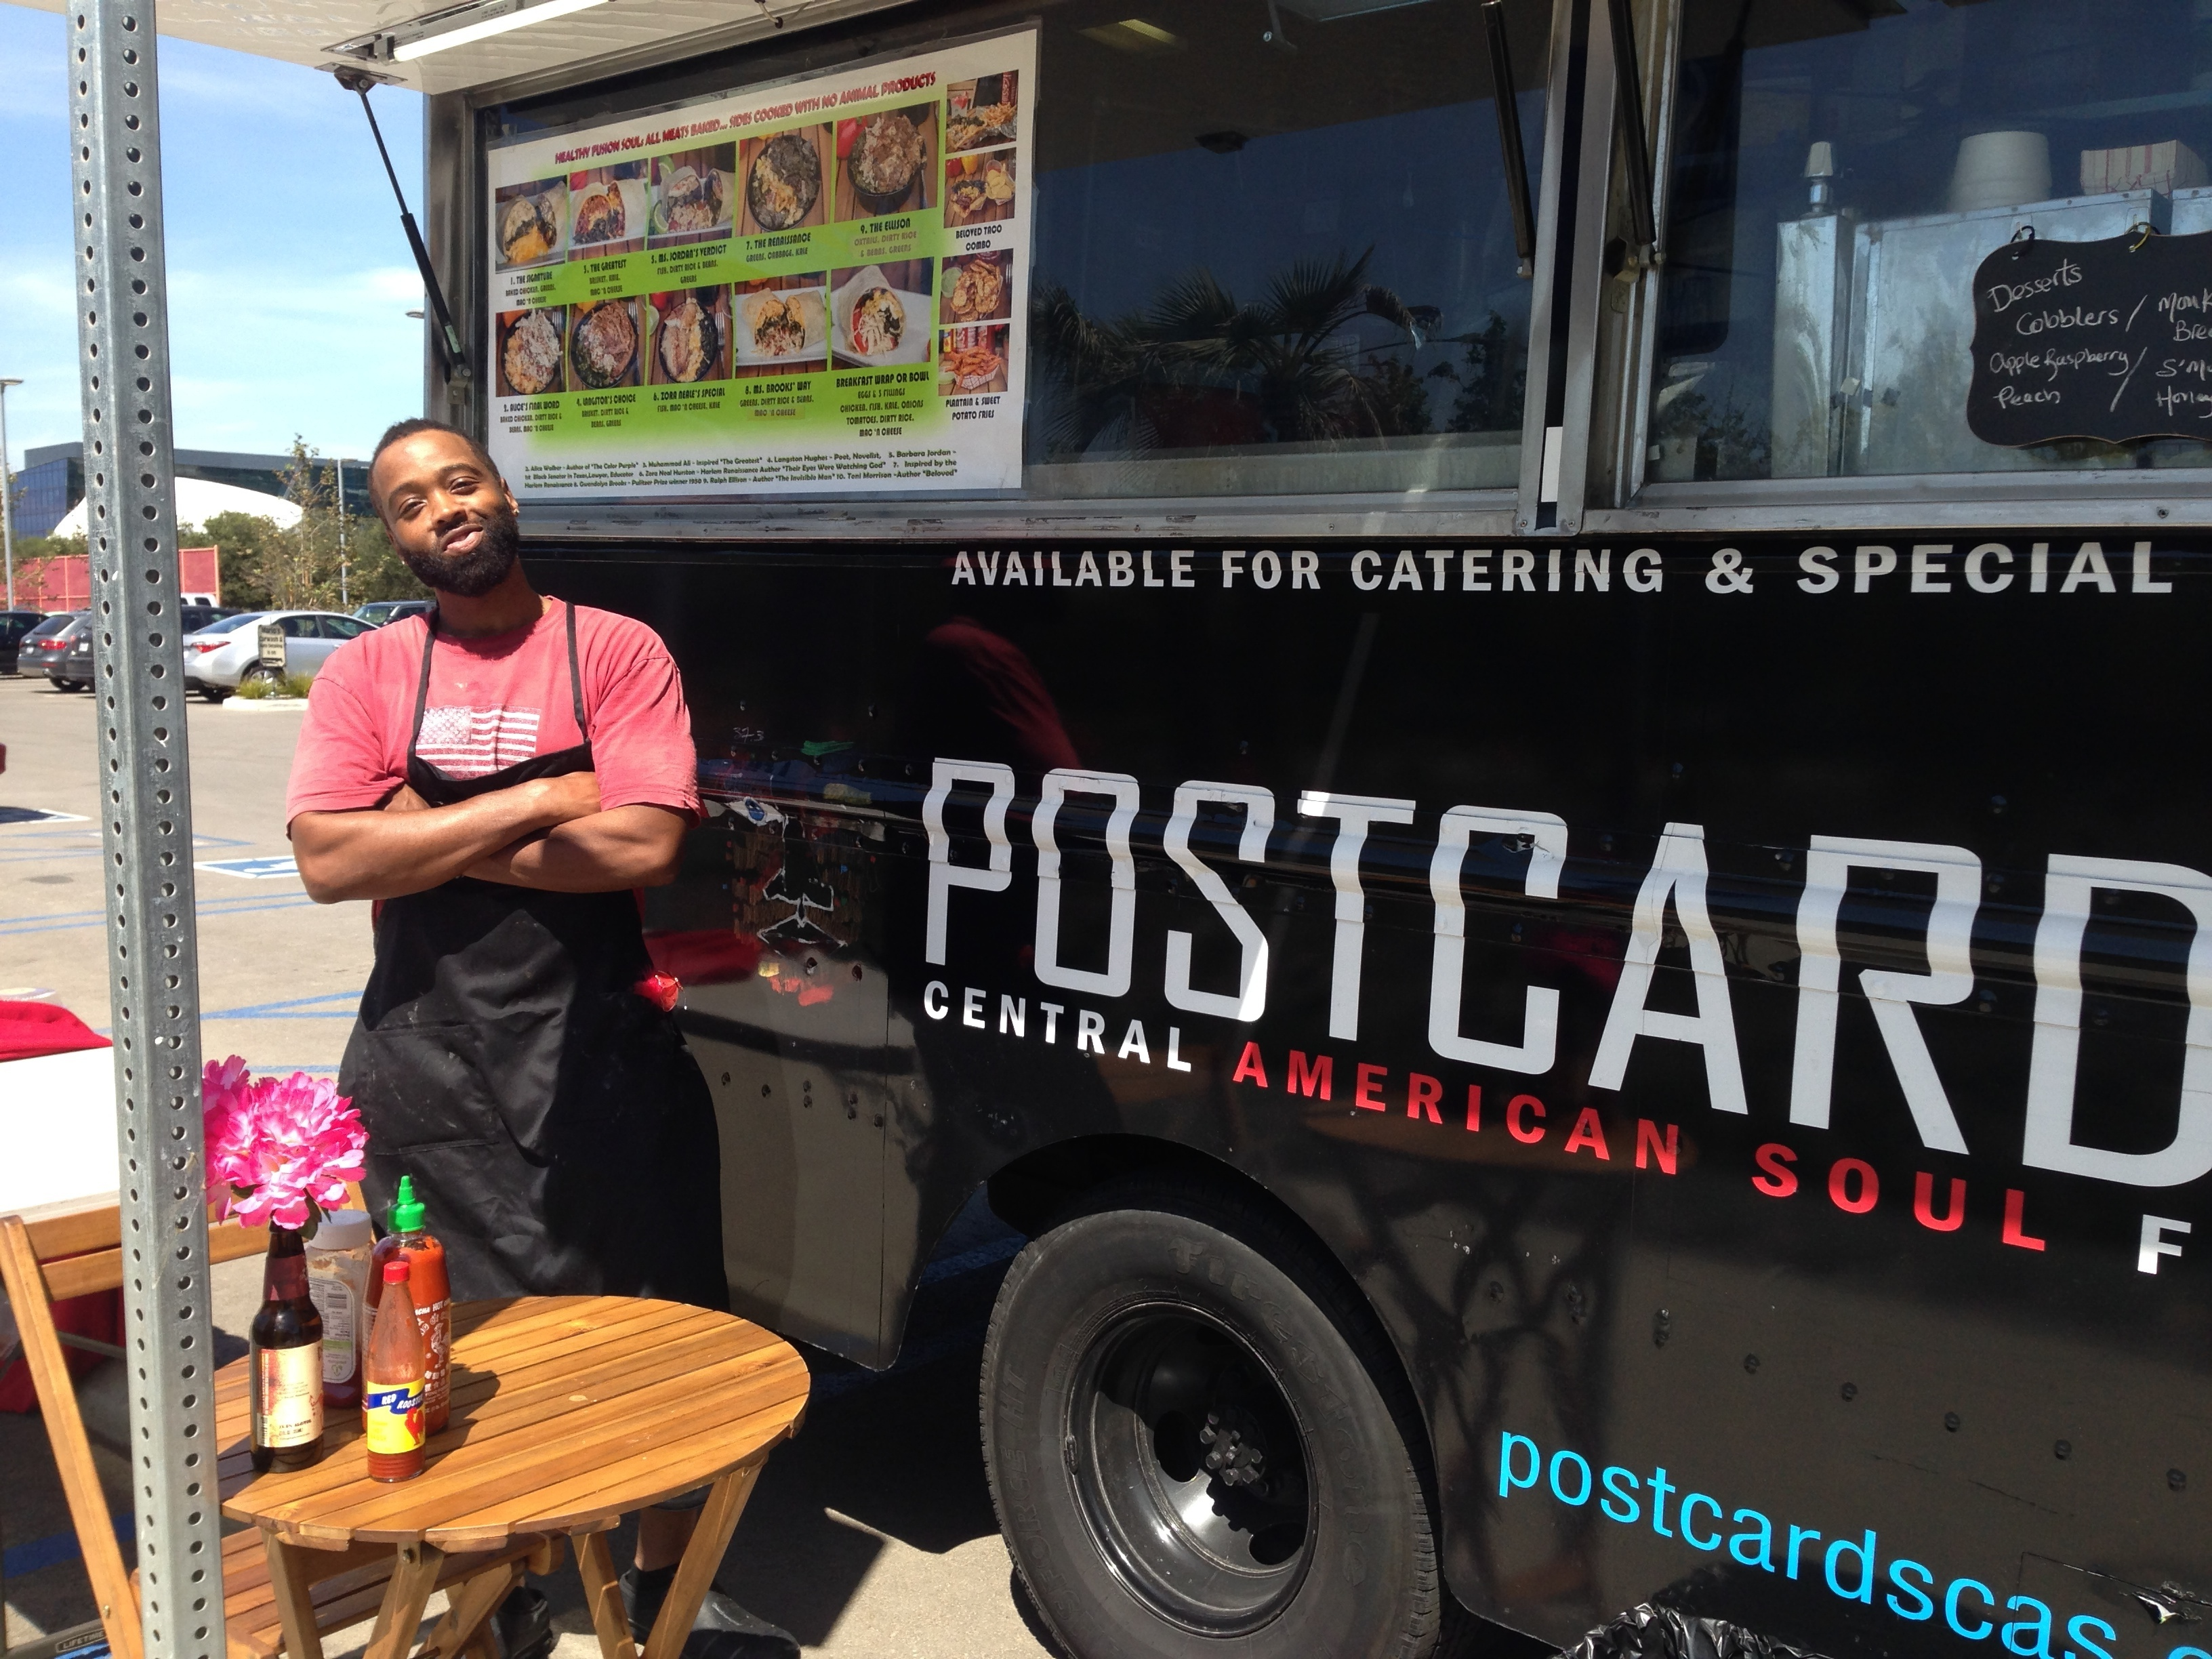 Yes To Postcards Central American Soul Food, A Southern California Gourmet Food Truck